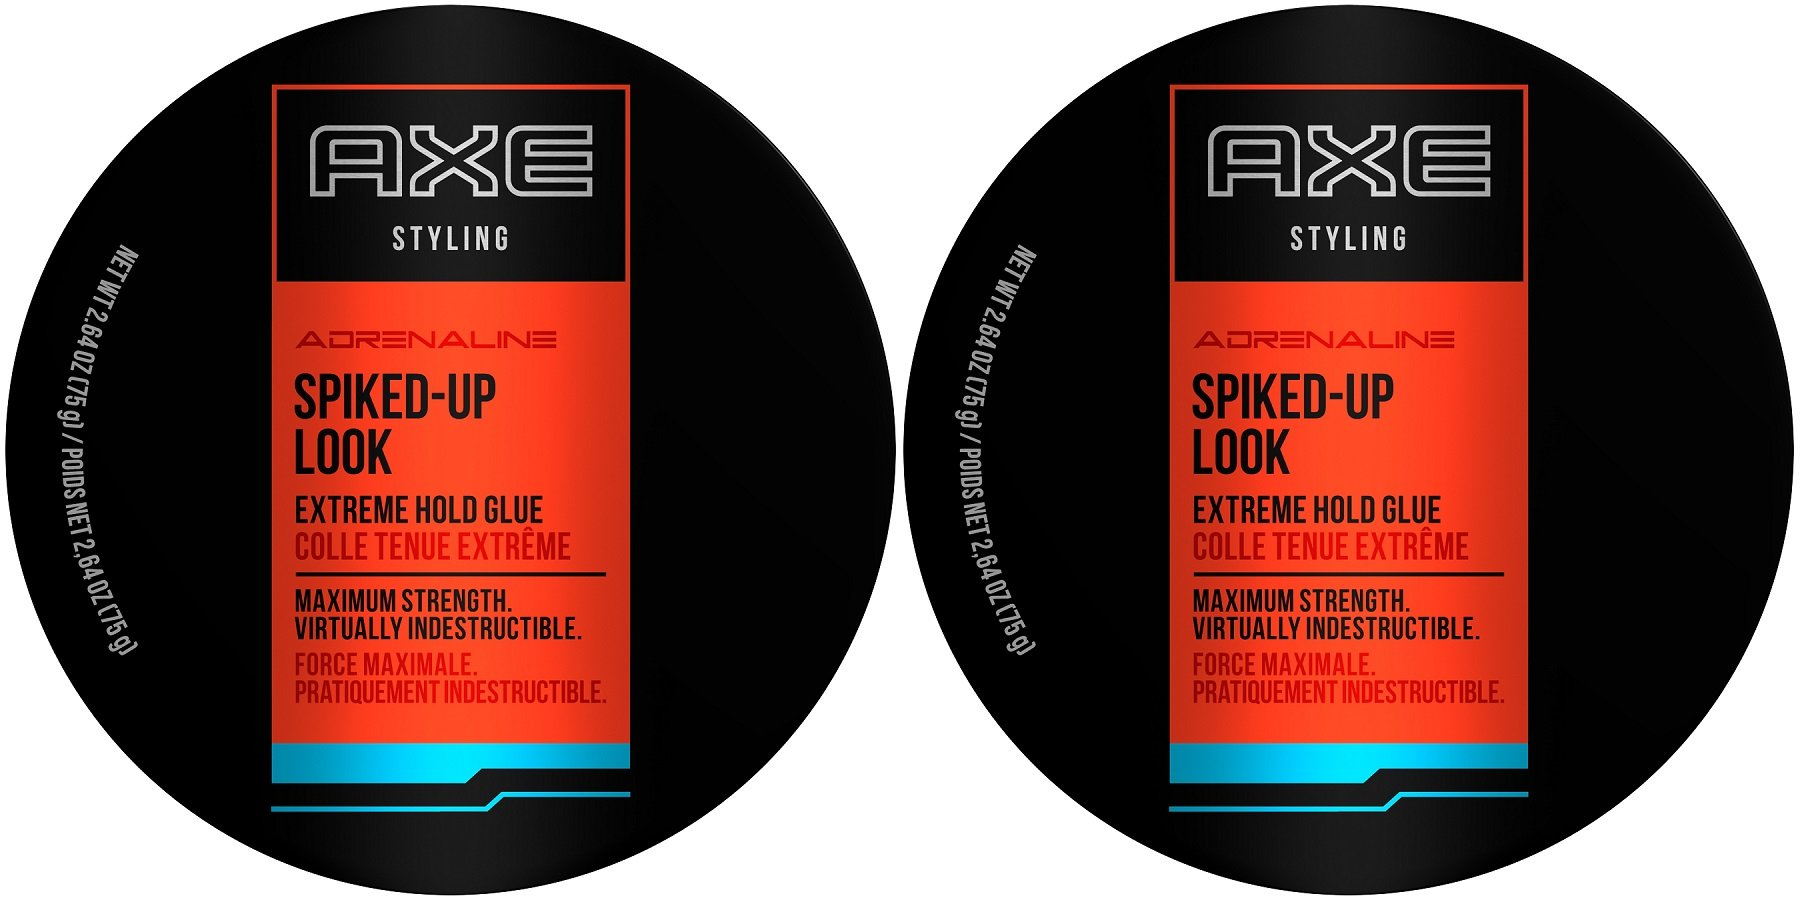 AXE Styling Adrenaline Spiked-Up Look Extreme Hold Glue, 2.64 Ounce (Pack of 2) by AXE